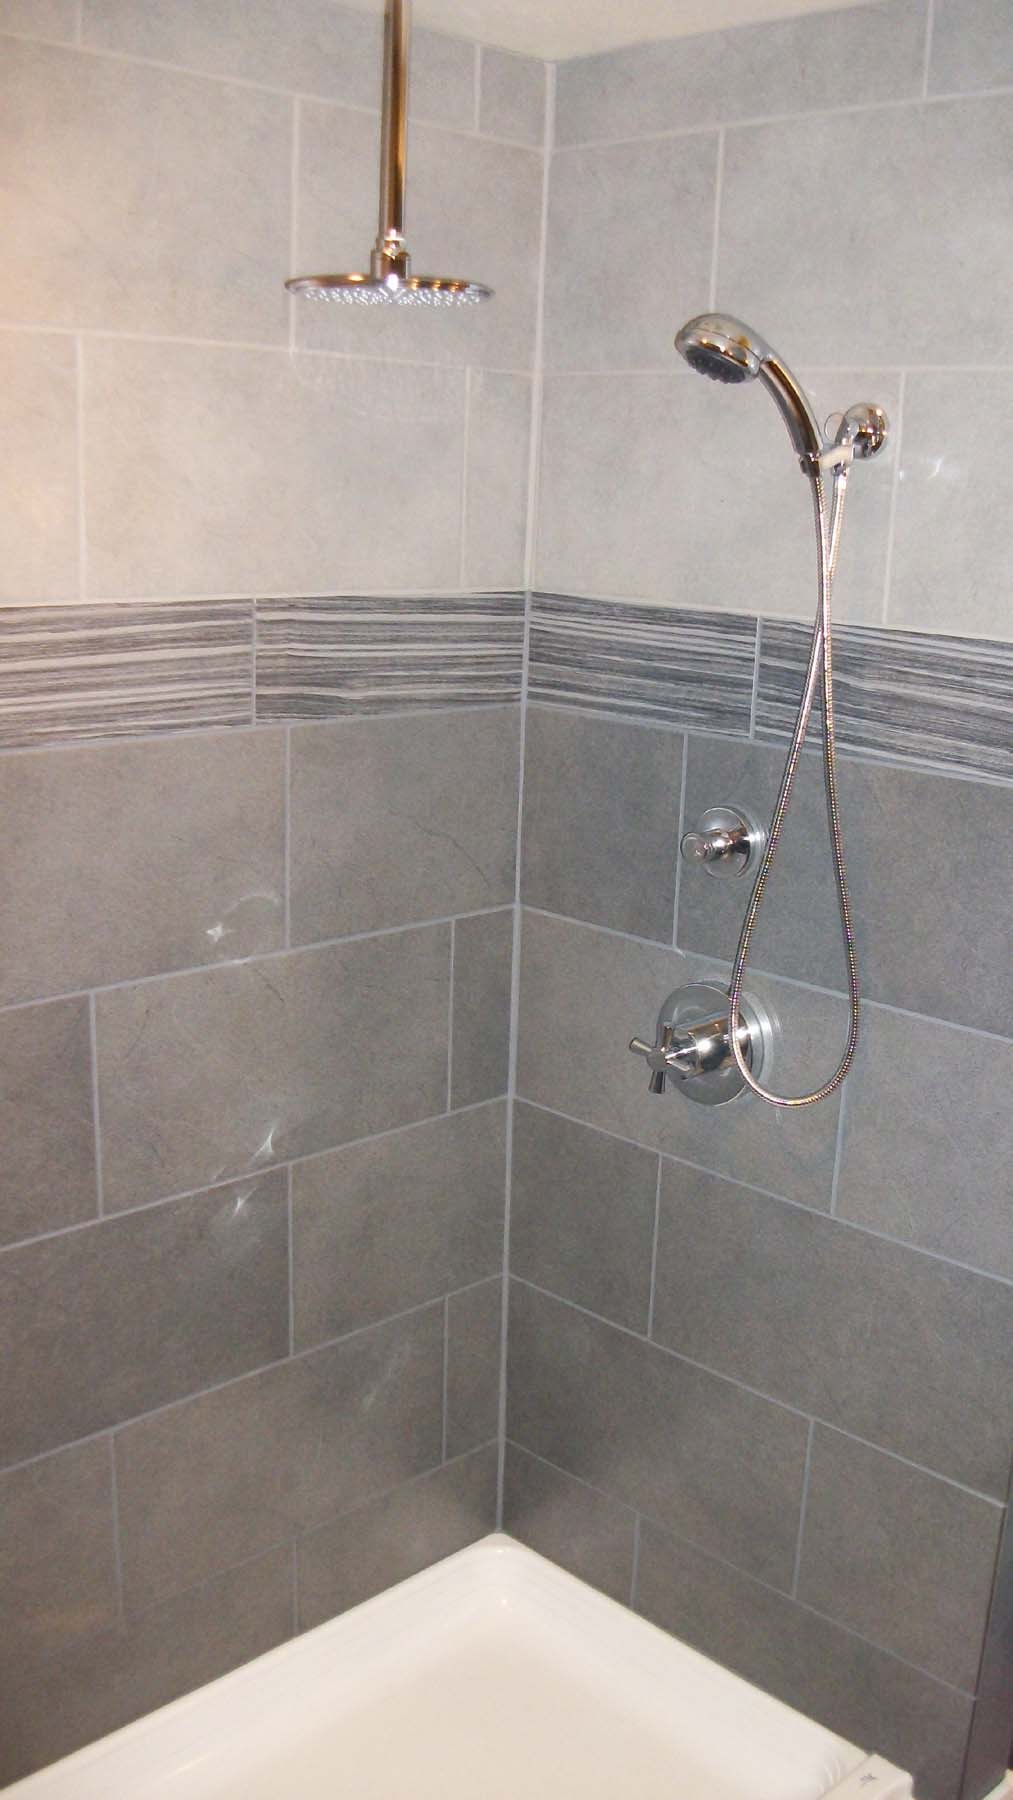 Bathroom Tiles Design Grey : Wonderful shower tile and beautiful lavs notes from the